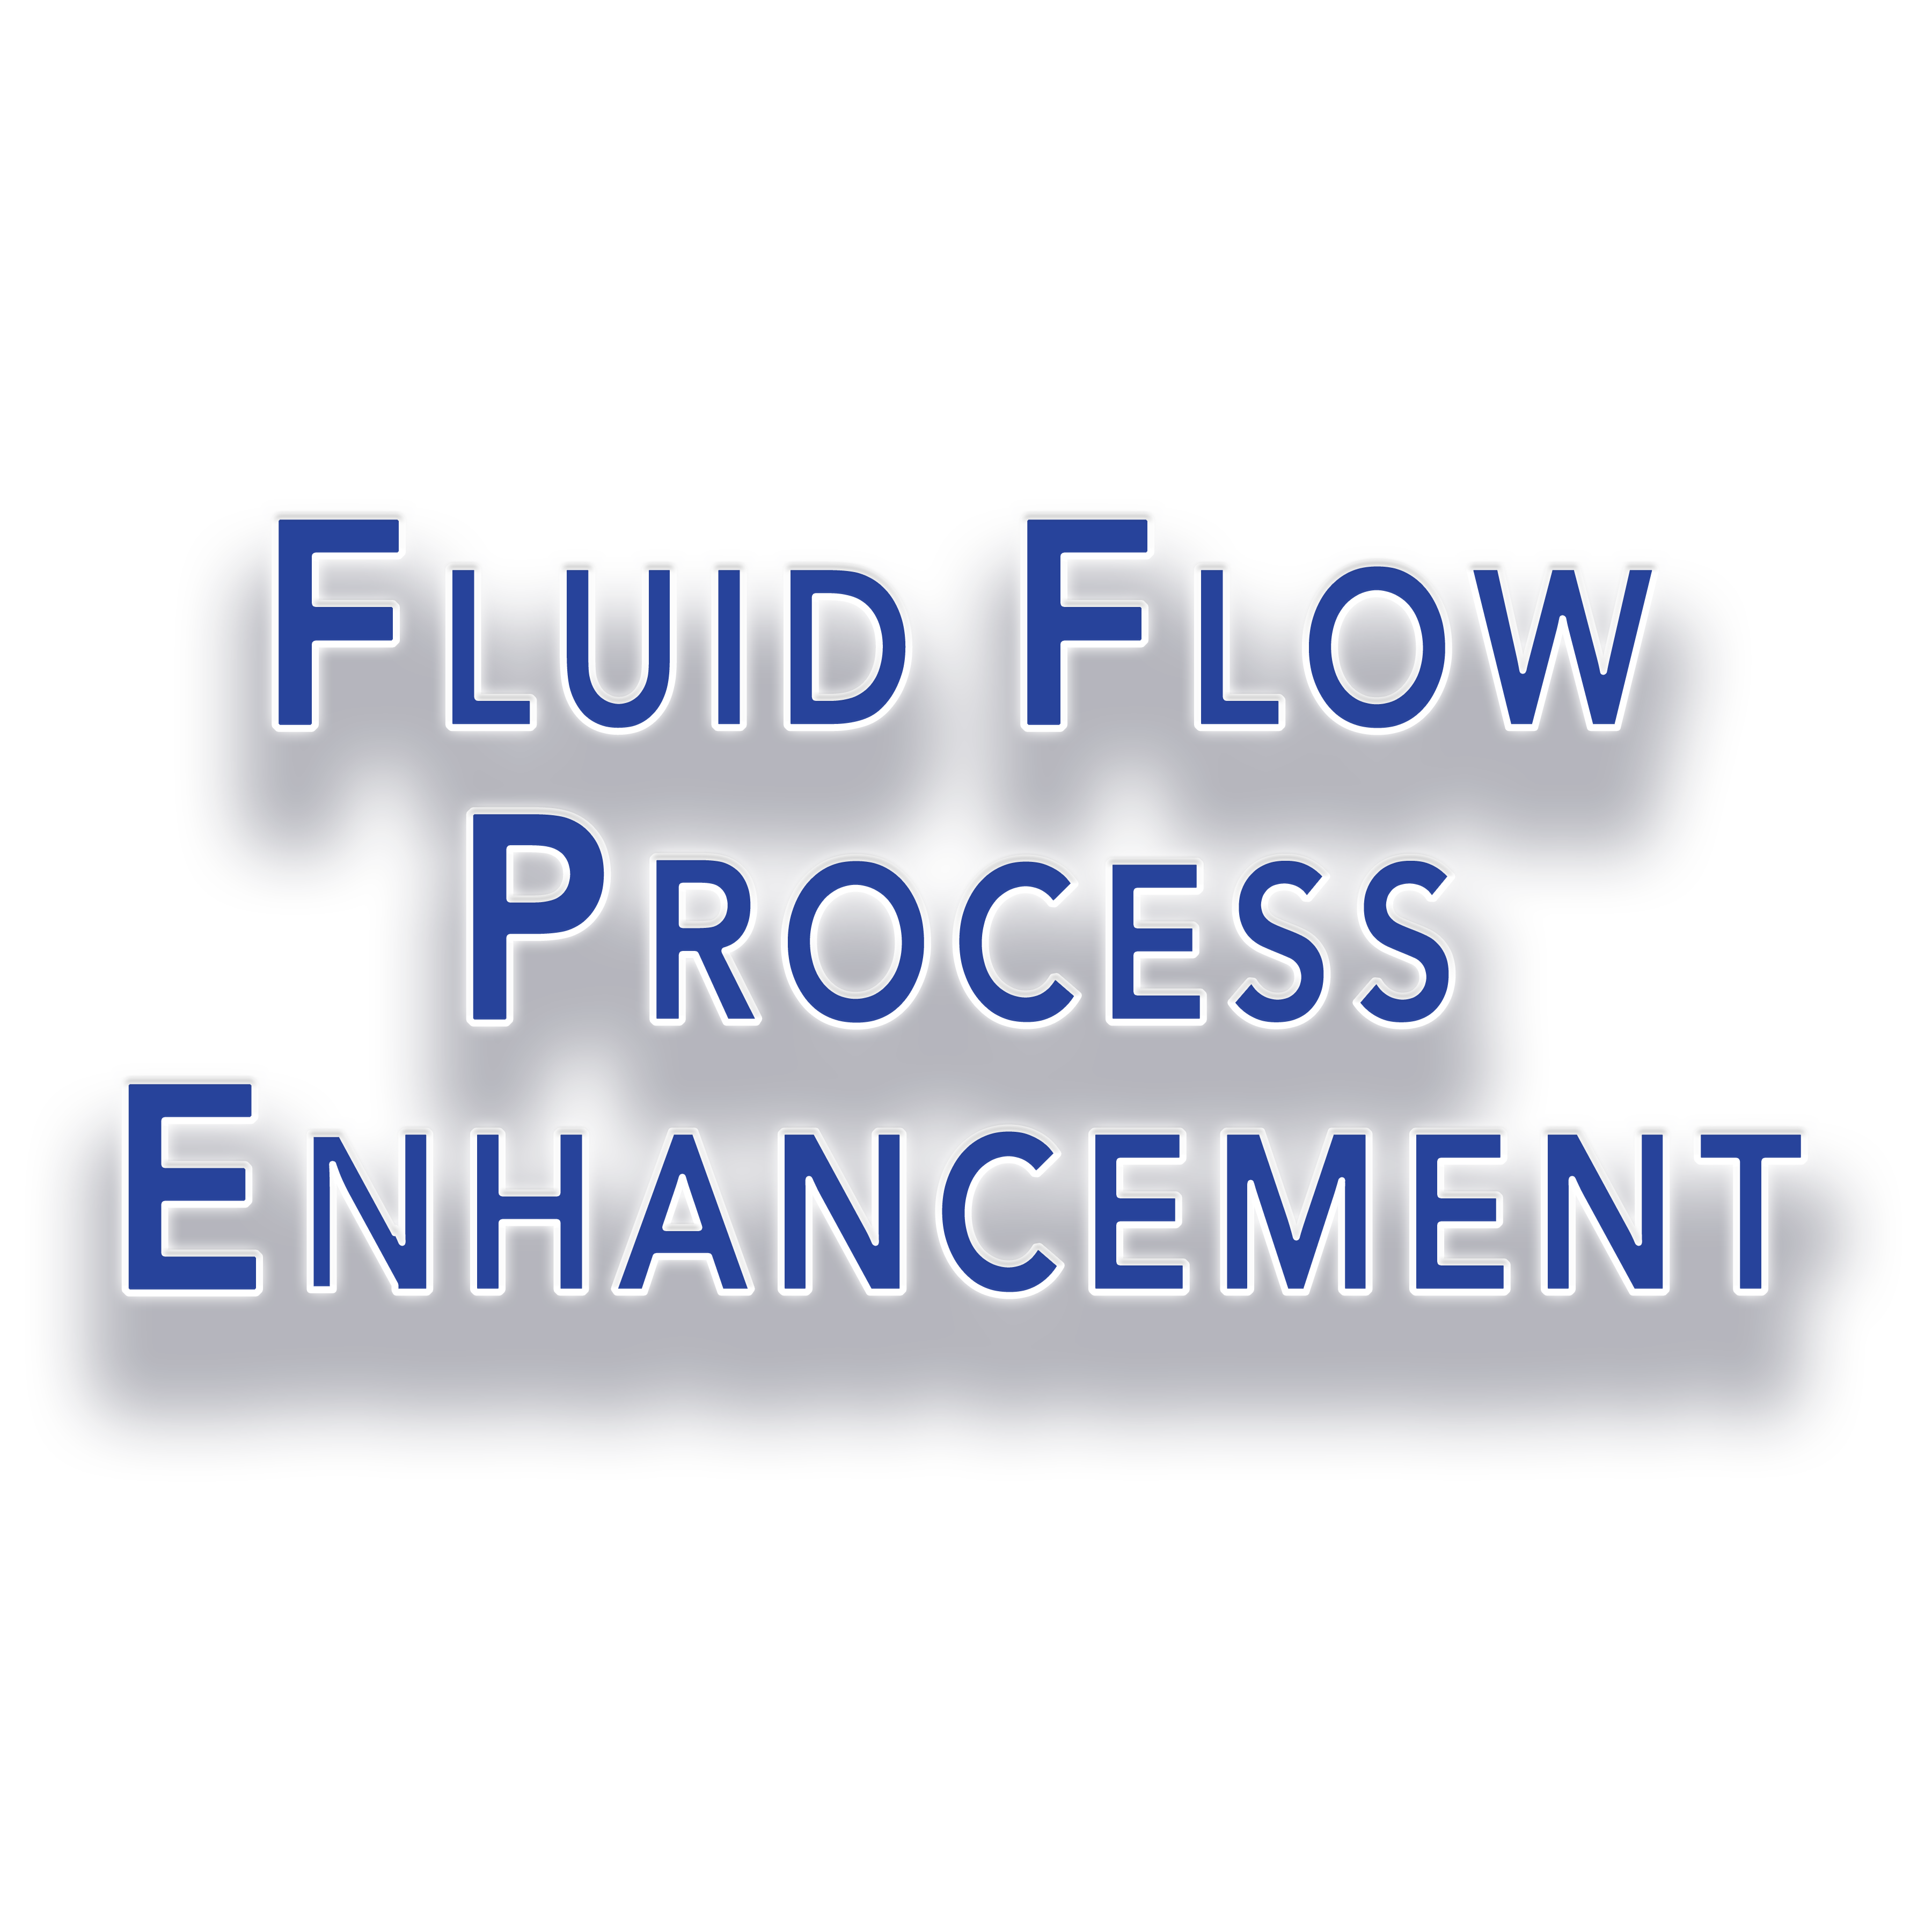 Fluid Flow Process Enhancement